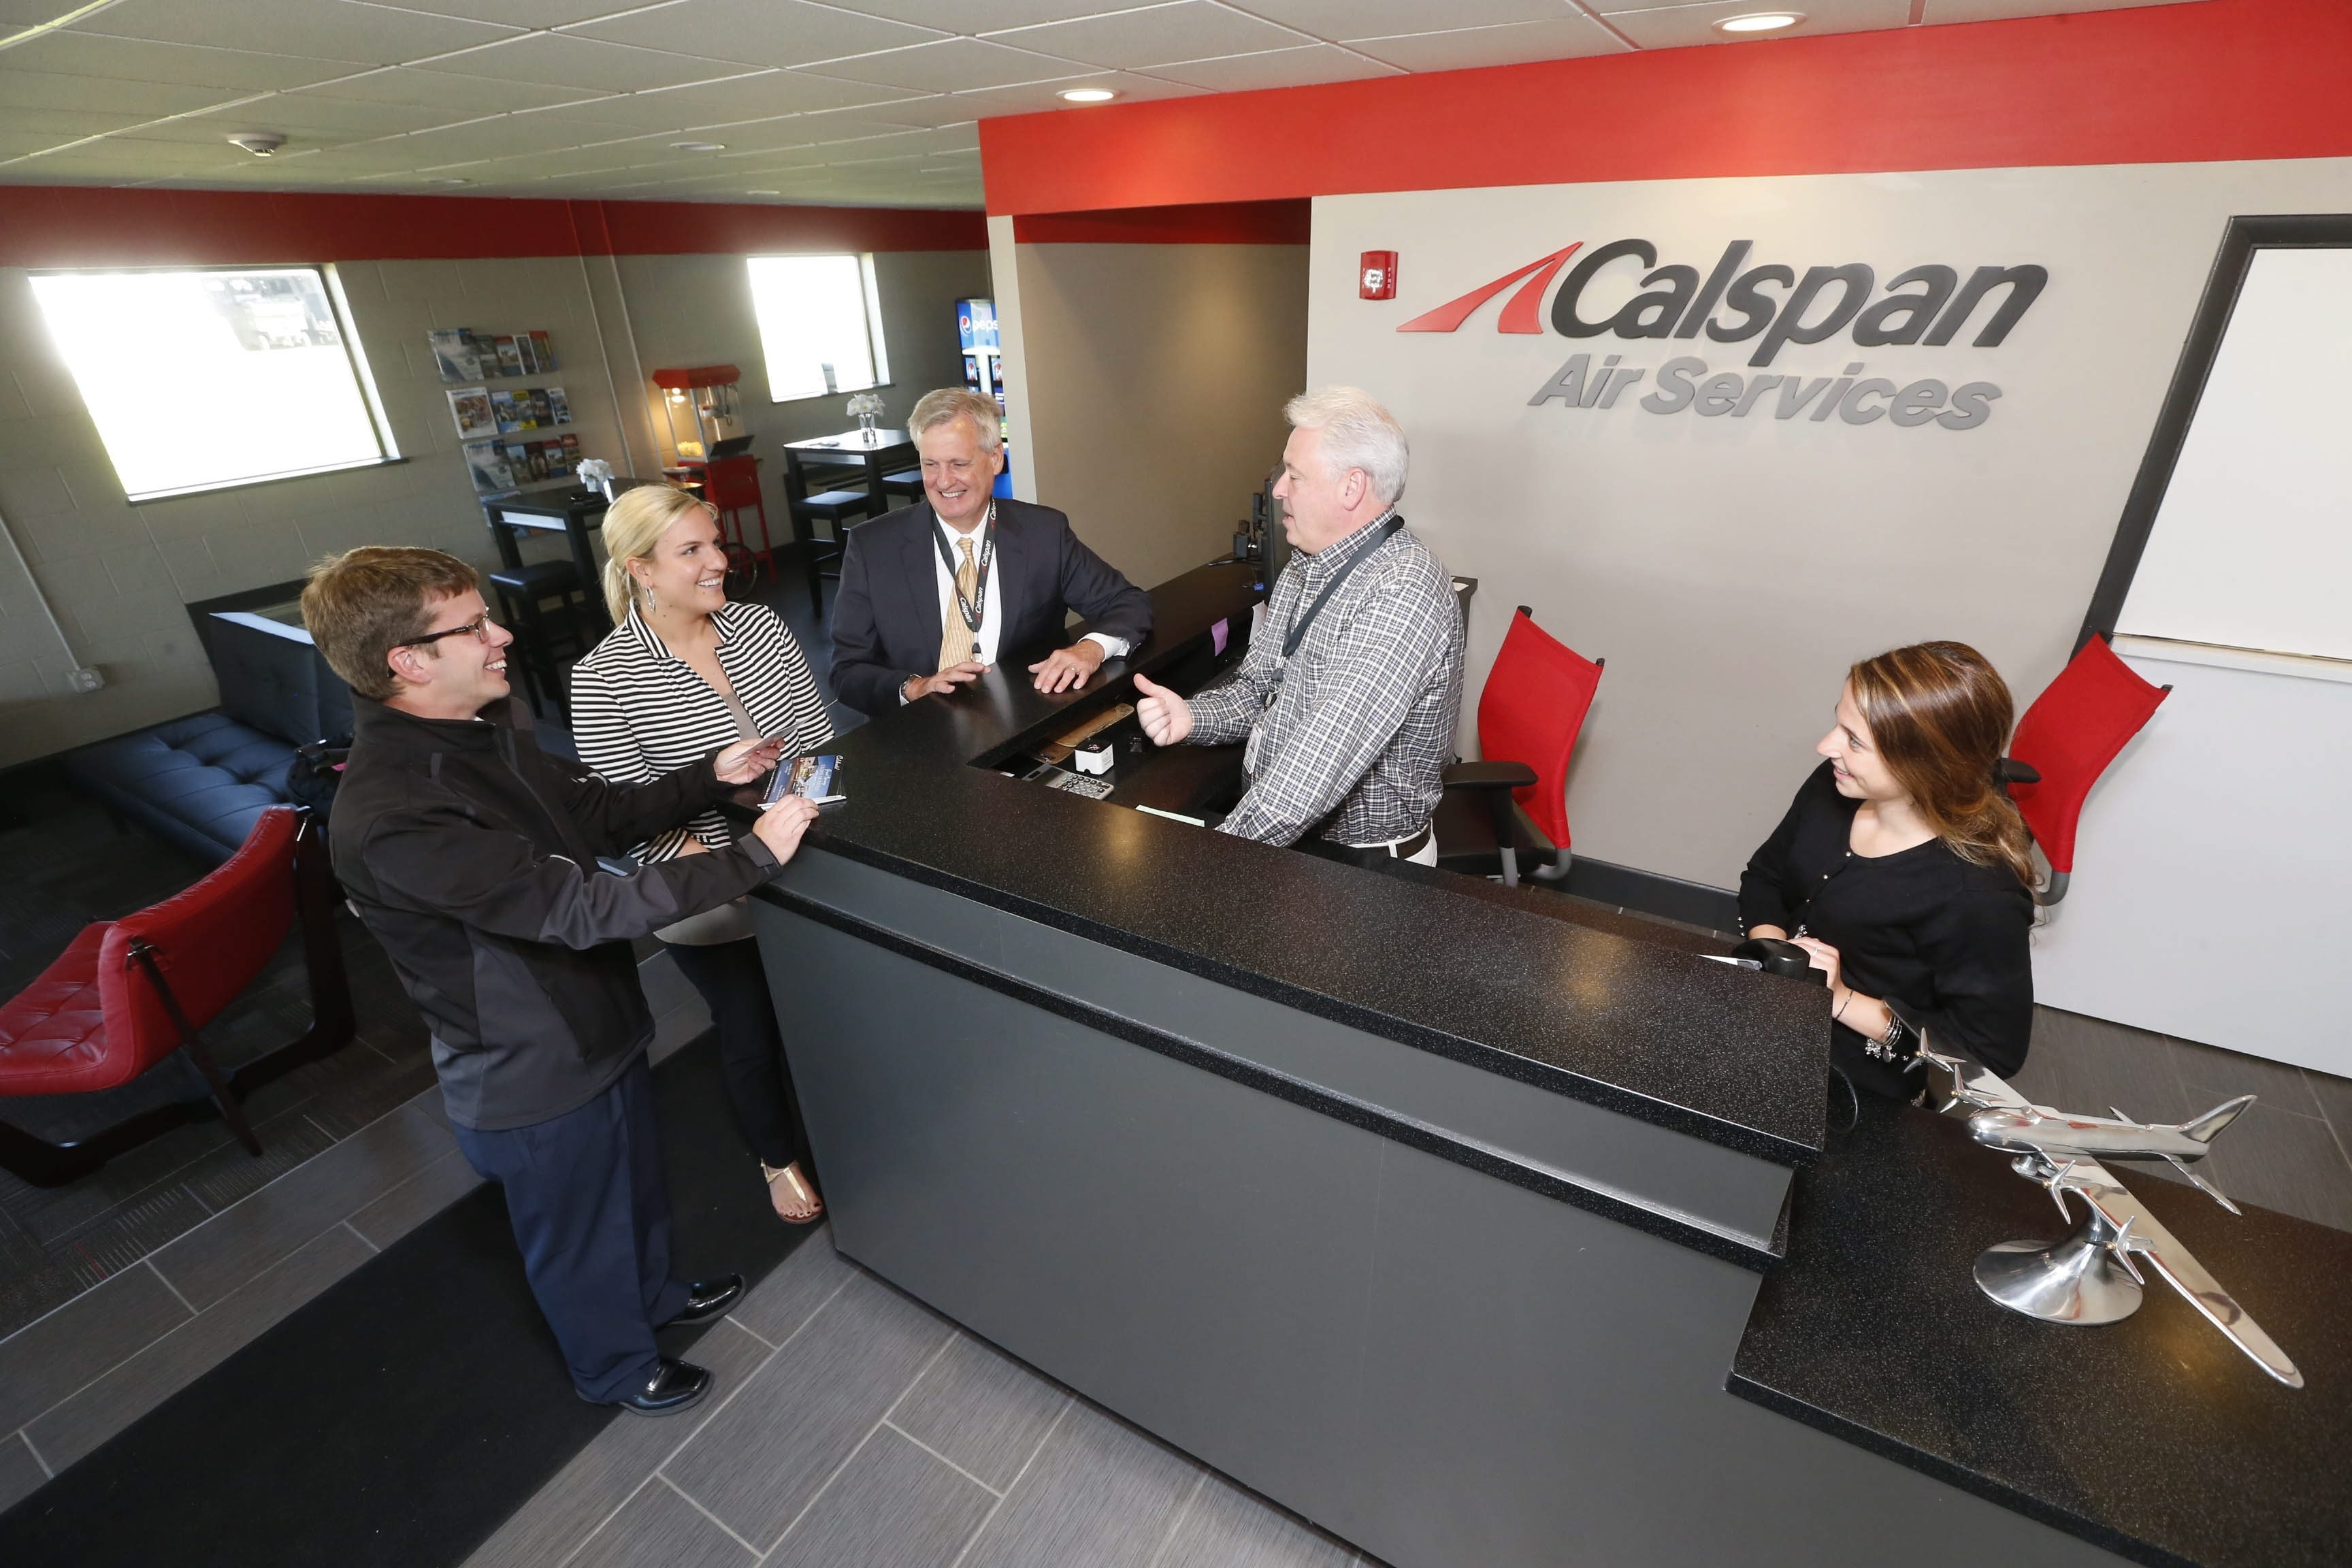 Getting ready for the Calspan Air Services open house celebration on Thursday are from left, Jerry Goupil Jr., director of marketing; employee Kara Devine; CEO Lou Knotts; Jim Celeste, director of fixed-based operations; and employee Barrett Armstrong in the refurbished facility next to Niagara Falls International Airport.